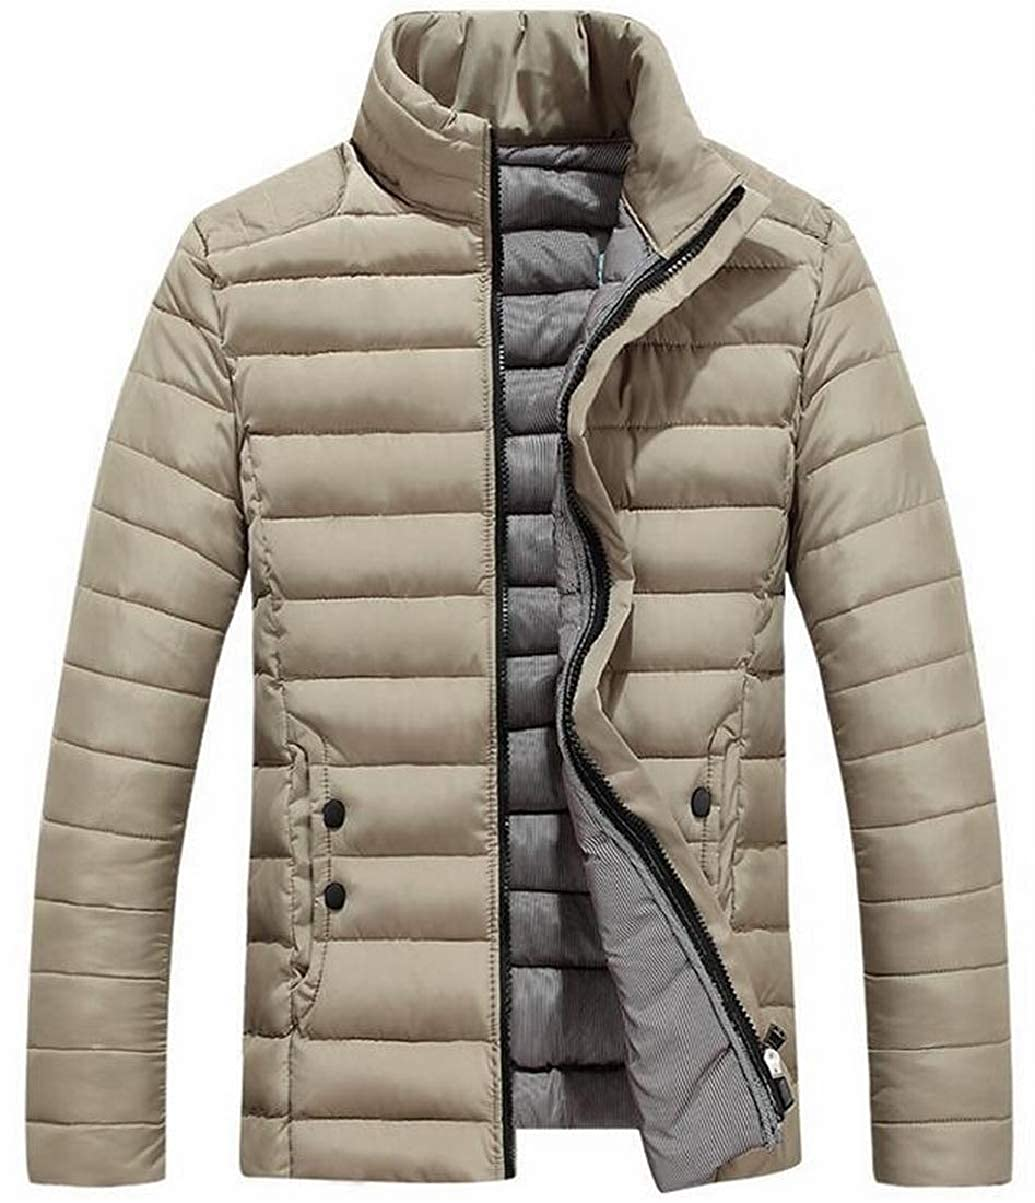 CBTLVSN Mens Parka Linen Cotton Baggy Padded Packable Casual Down Jacket